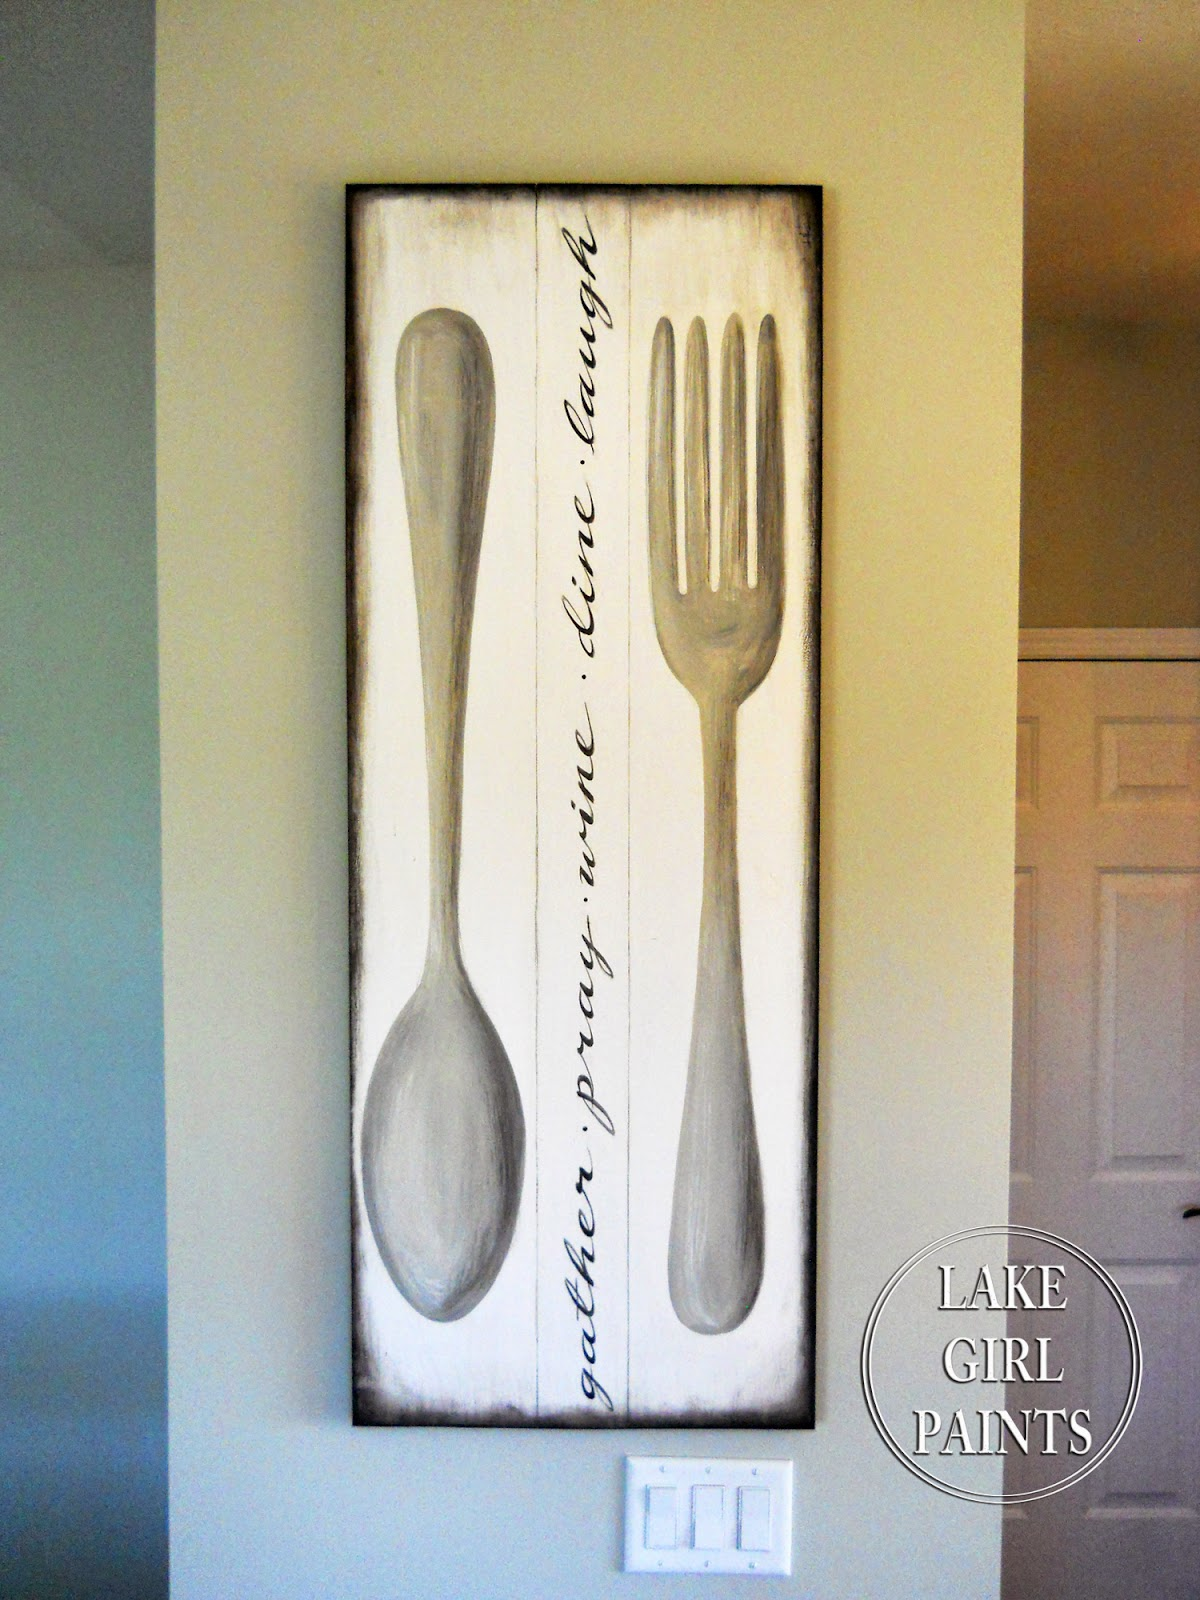 Lake girl paints making dining room wall art for Dining wall painting